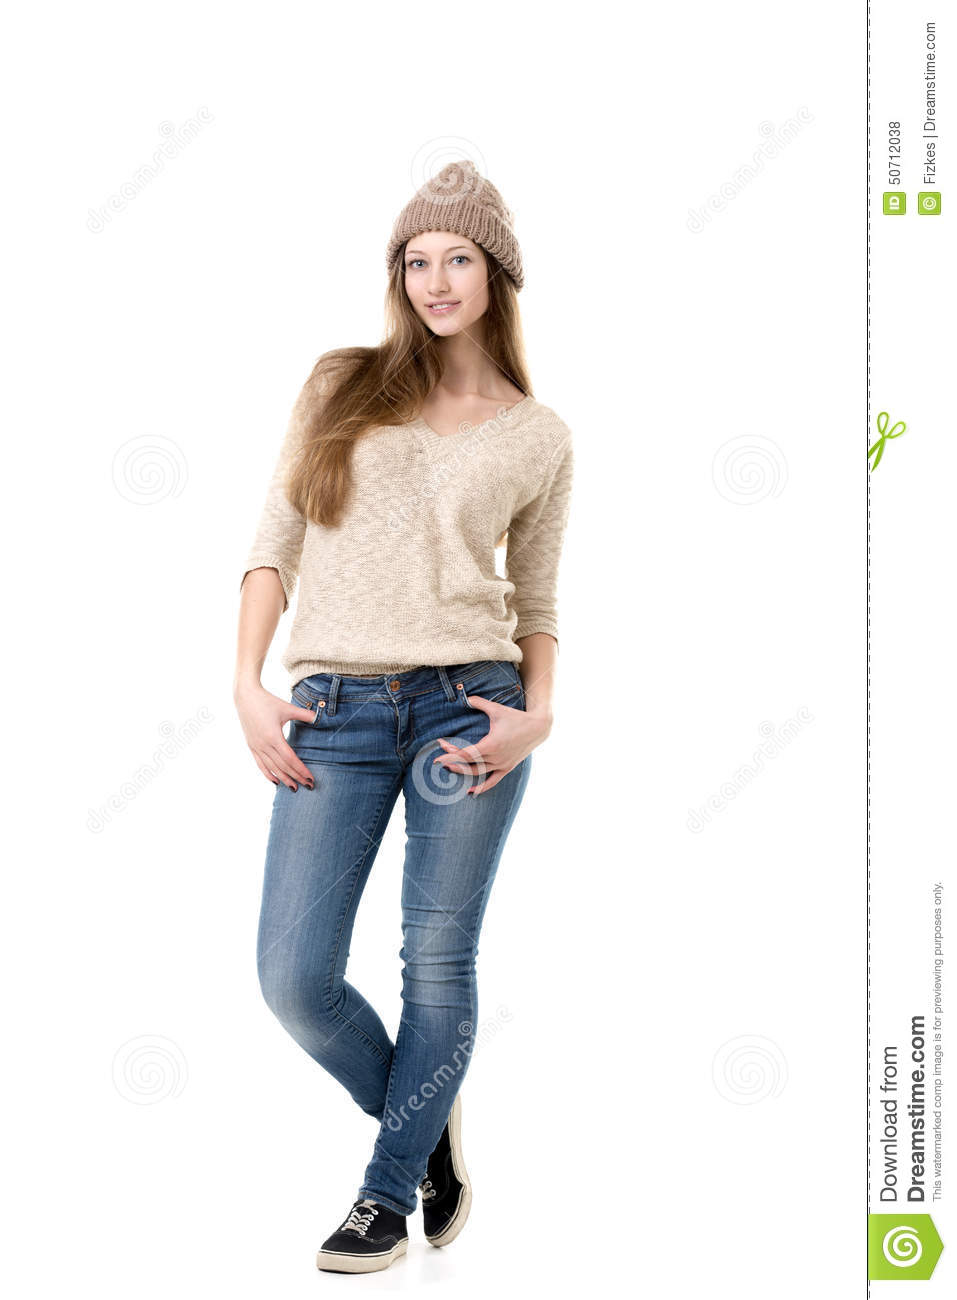 Attractive teenage girl wearing casual warm clothes